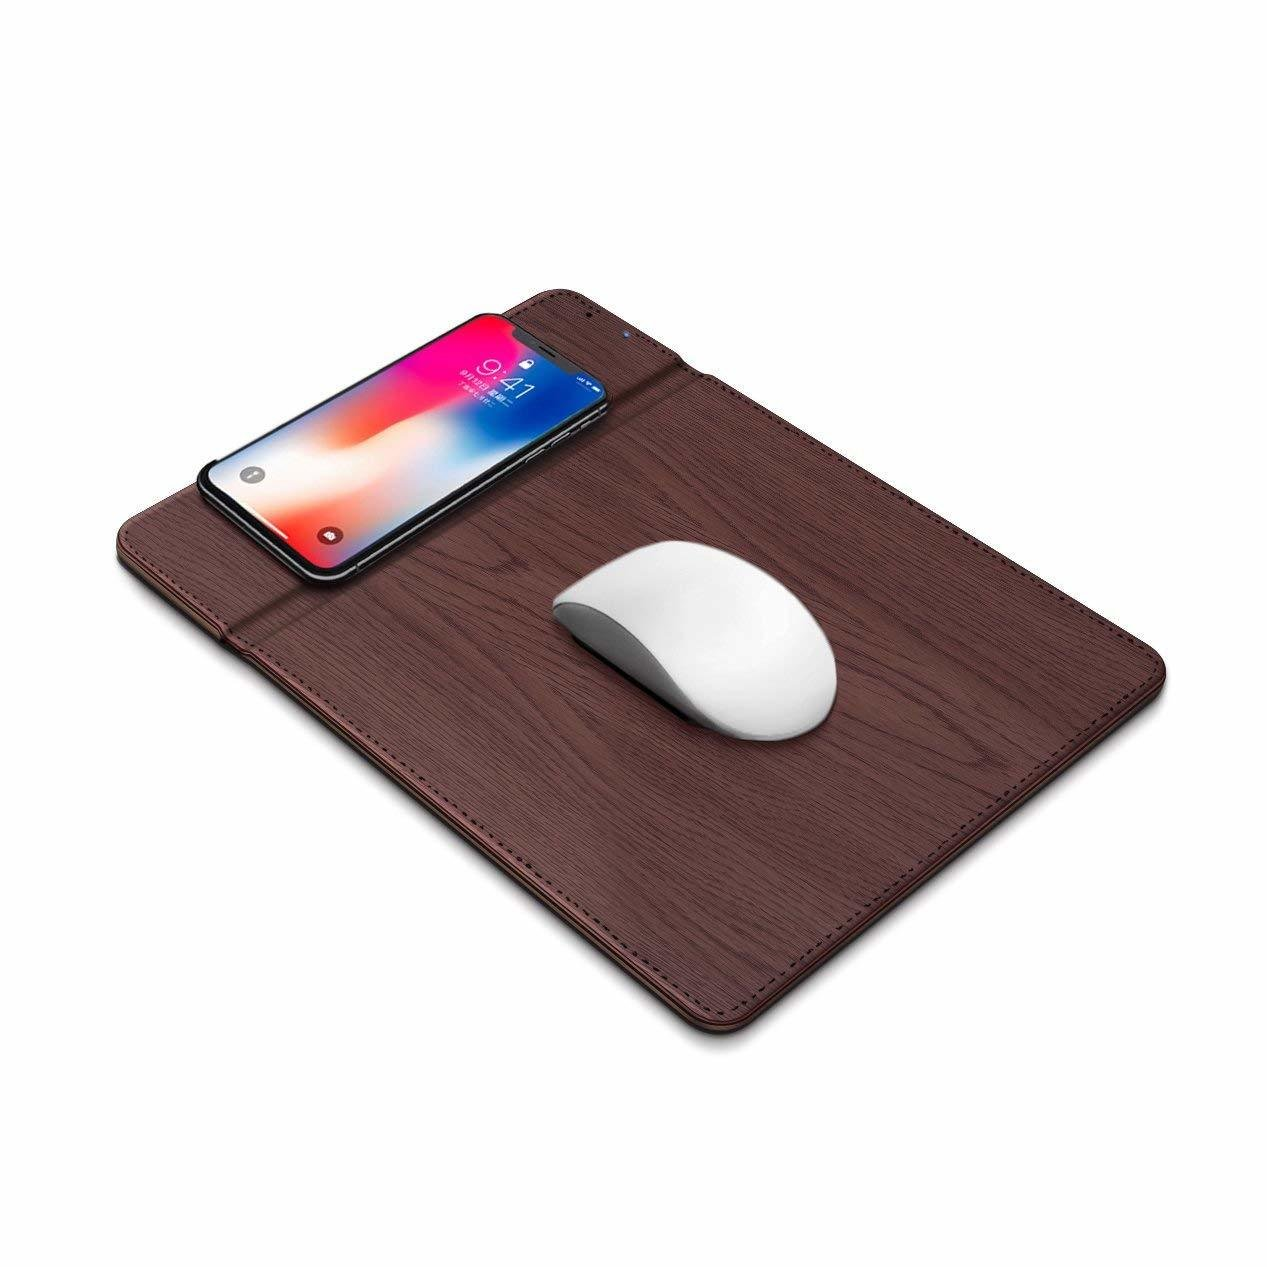 MKK Wireless Charger Mouse Pad Mat Charger, QI Mouse Pad/Mat Wireless Charger iPhone X iPhone 8/8 Plus Samsung Note 8/S8/S7/S6/Edge